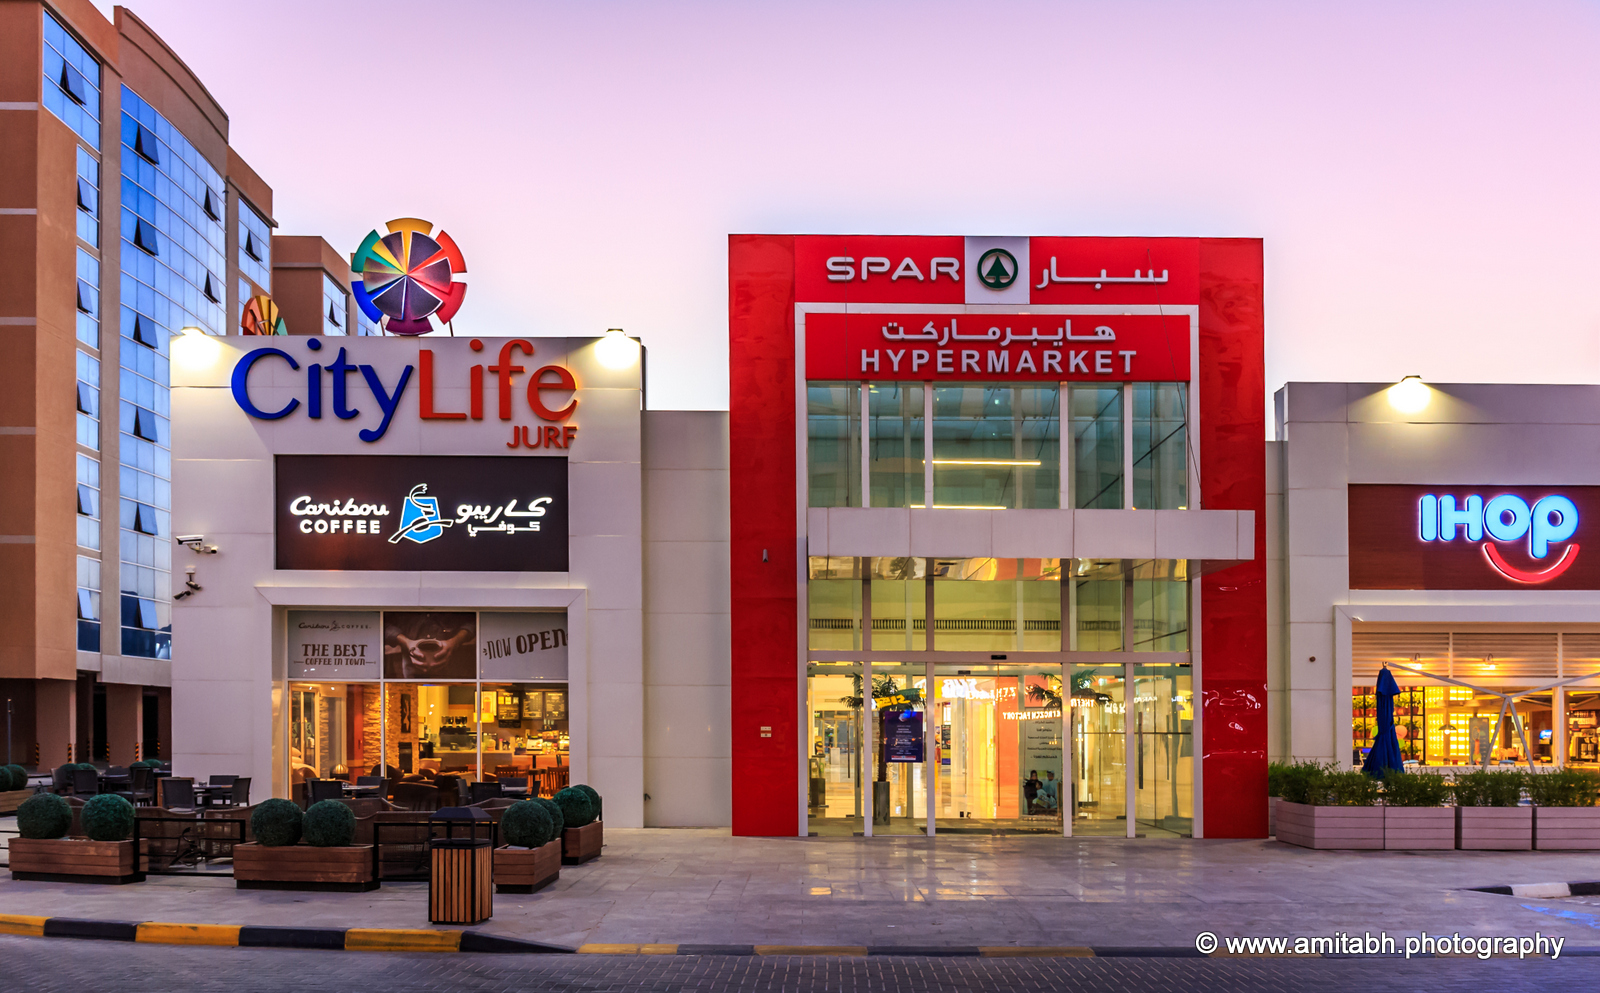 Shopping Malls | Amitabh Sharma Photography | Dubai